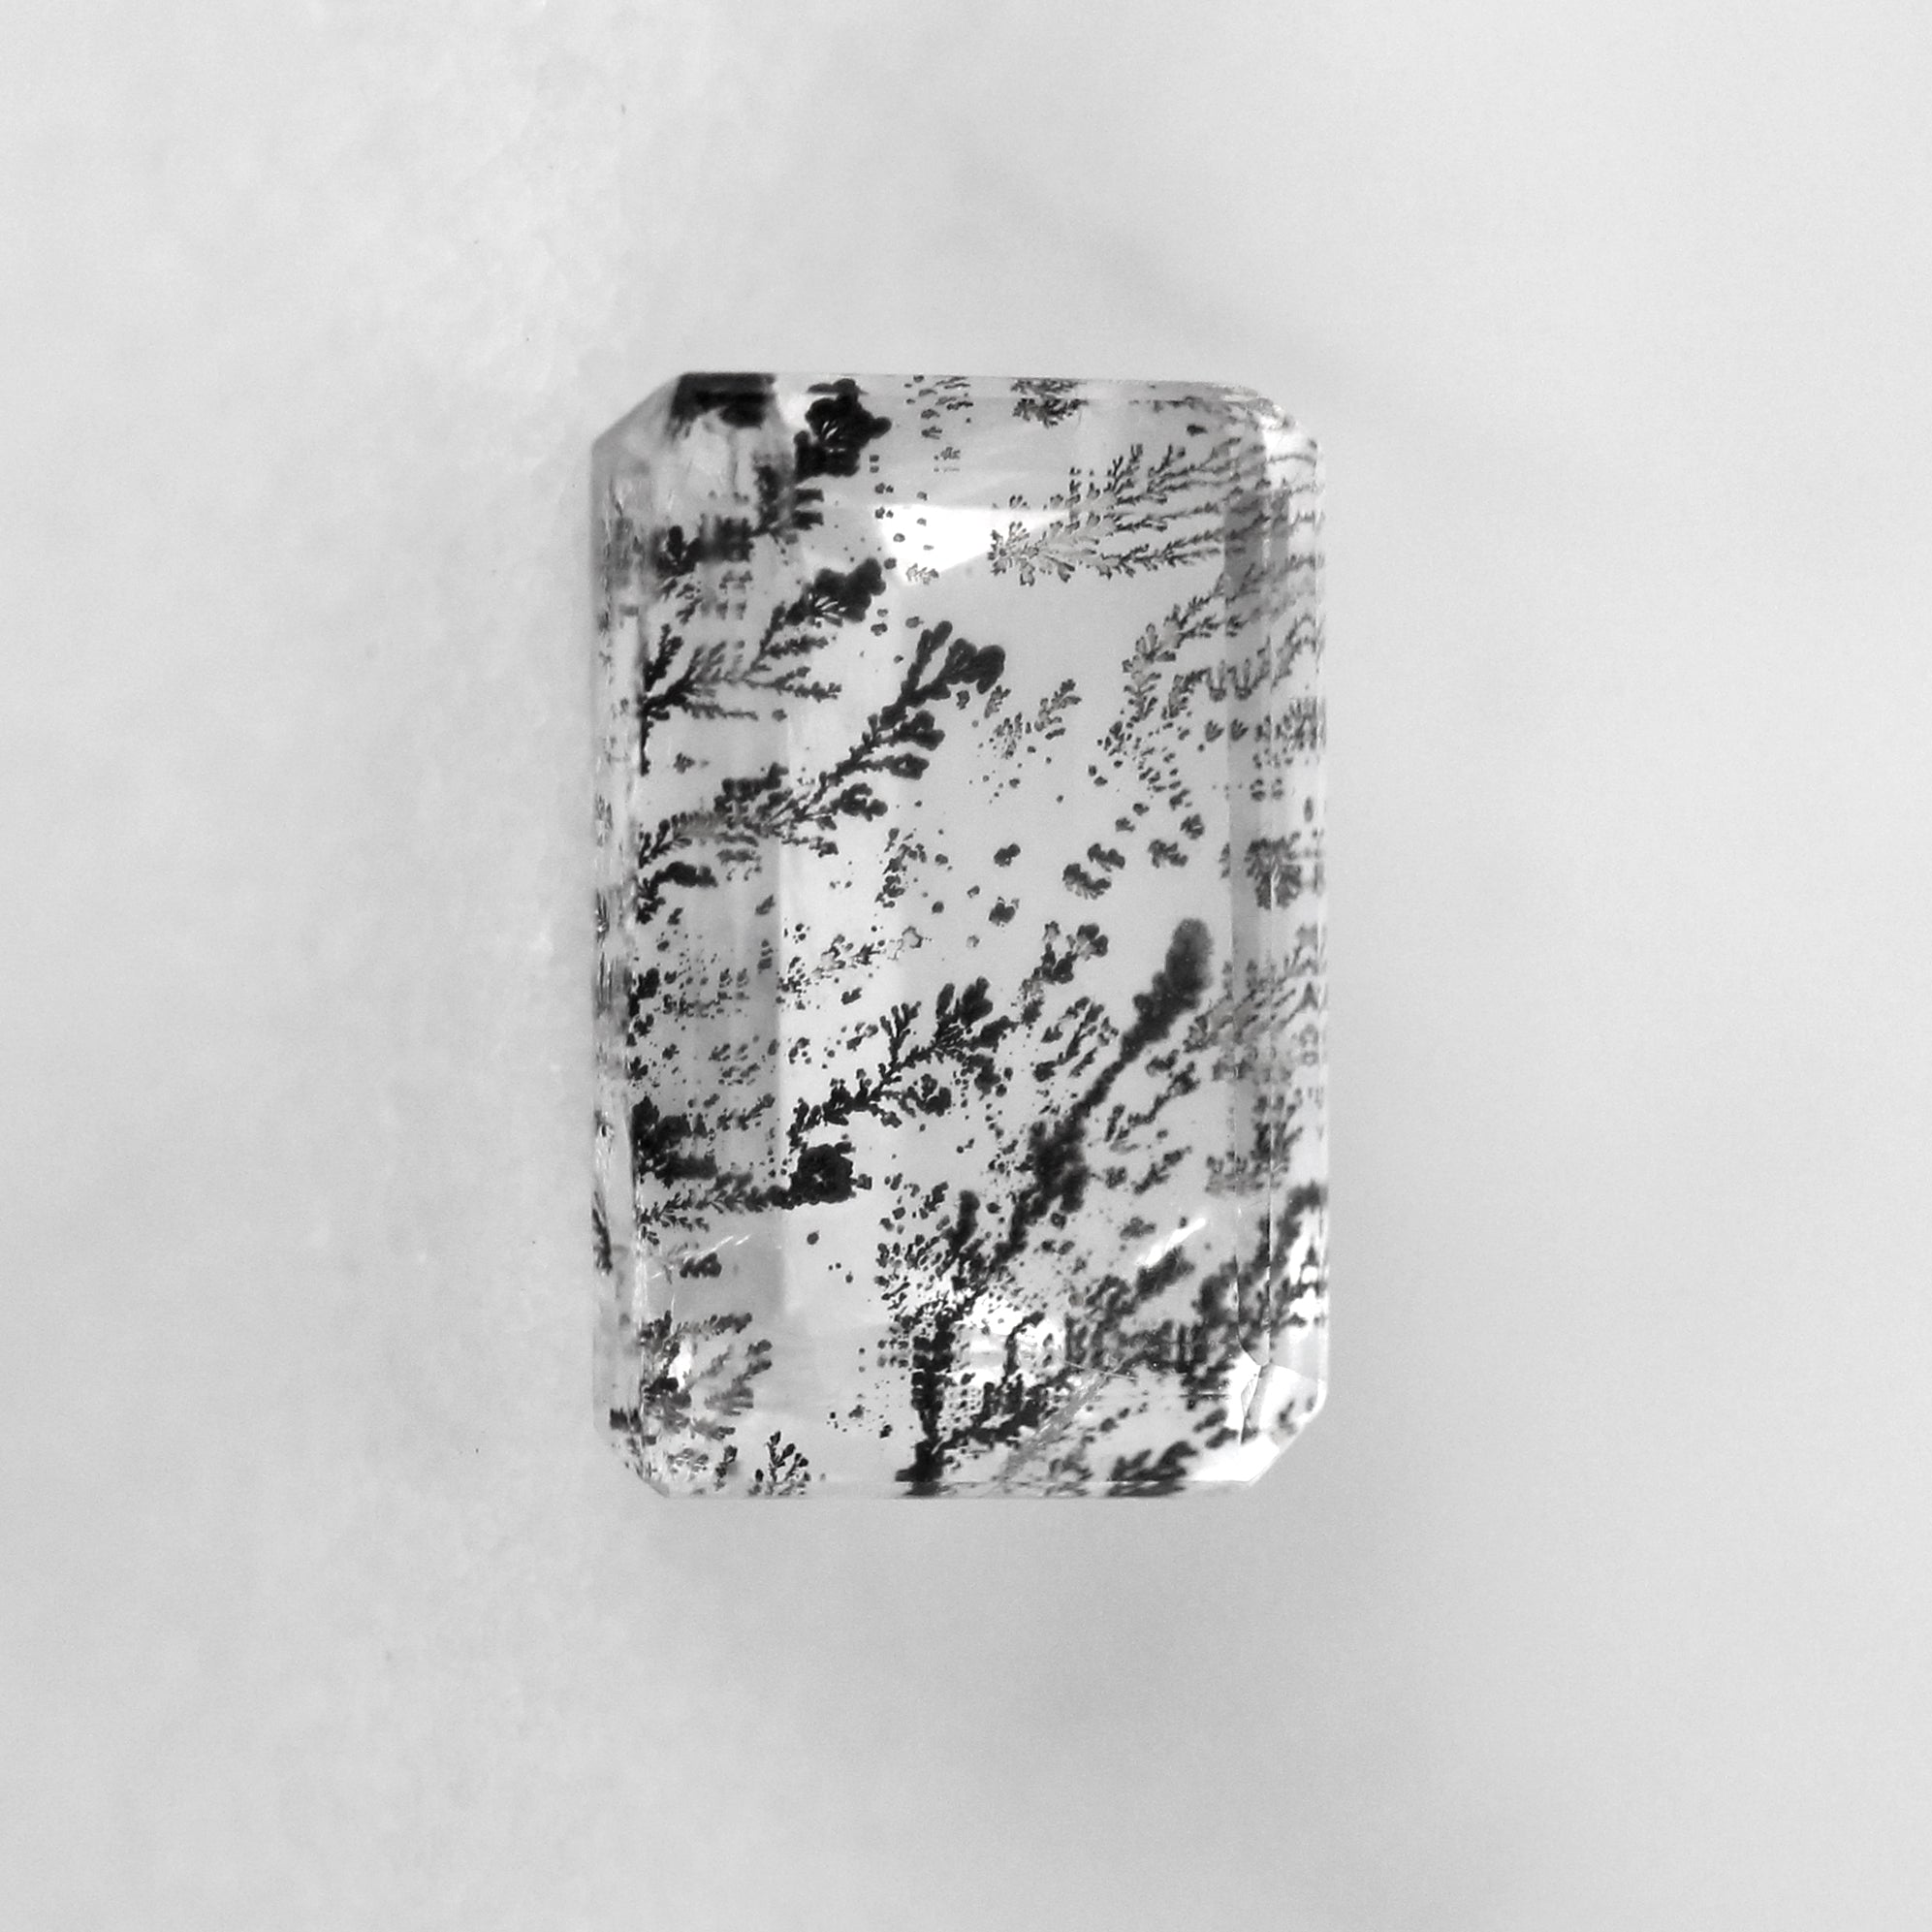 3.8ct Dendritic Quartz for Custom Work - Inventory Code DQ38 - Celestial Diamonds ® by Midwinter Co.